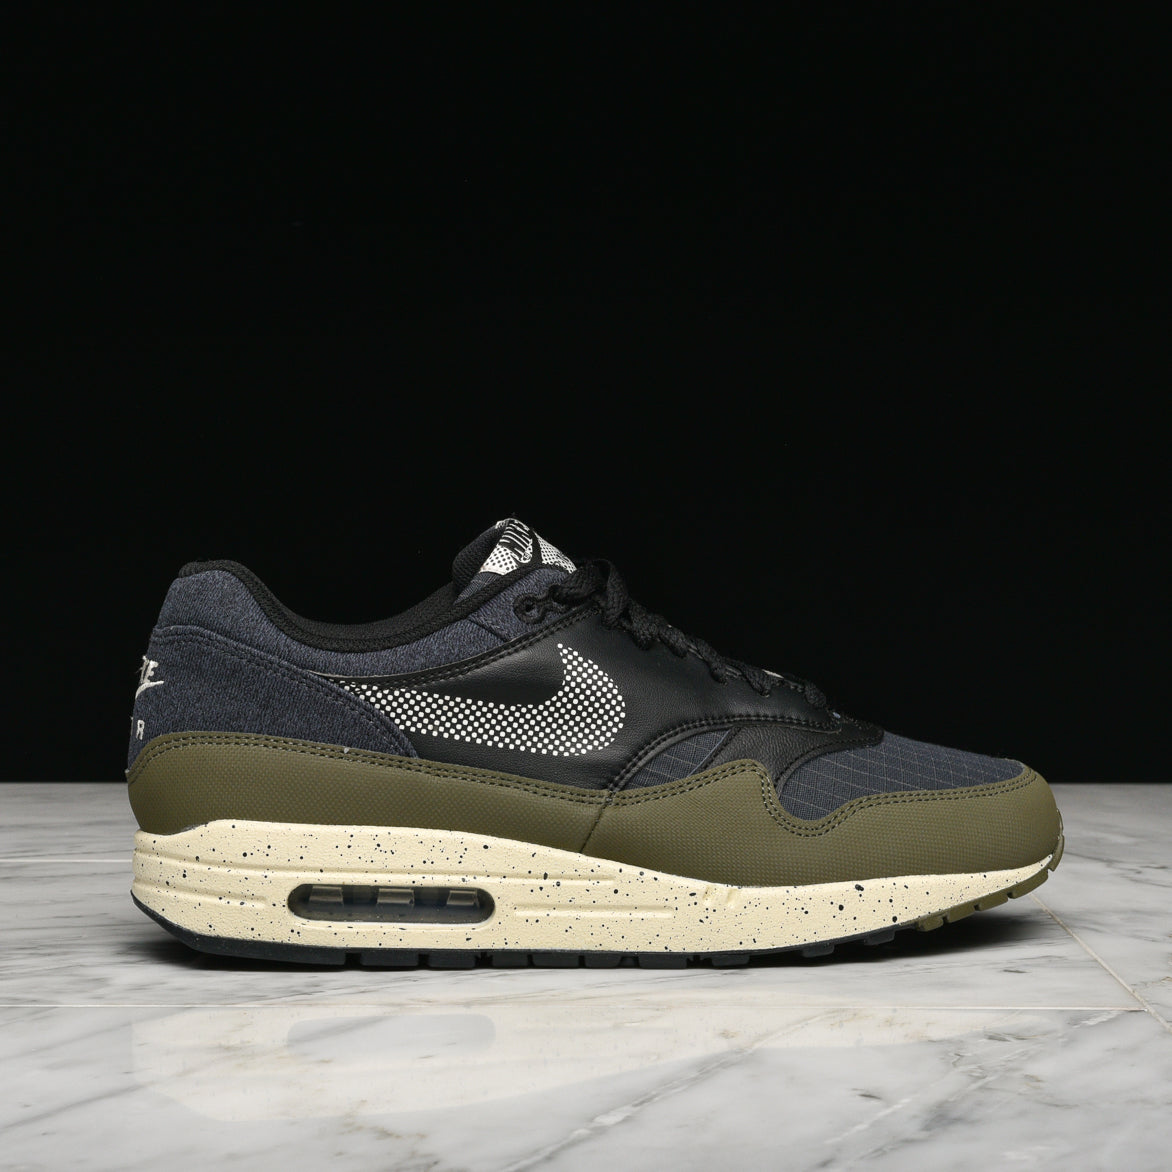 factory authentic da14e 8b278 AIR MAX 1 SE - MEDIUM OLIVE  BLACK  lapstoneandhammer.com